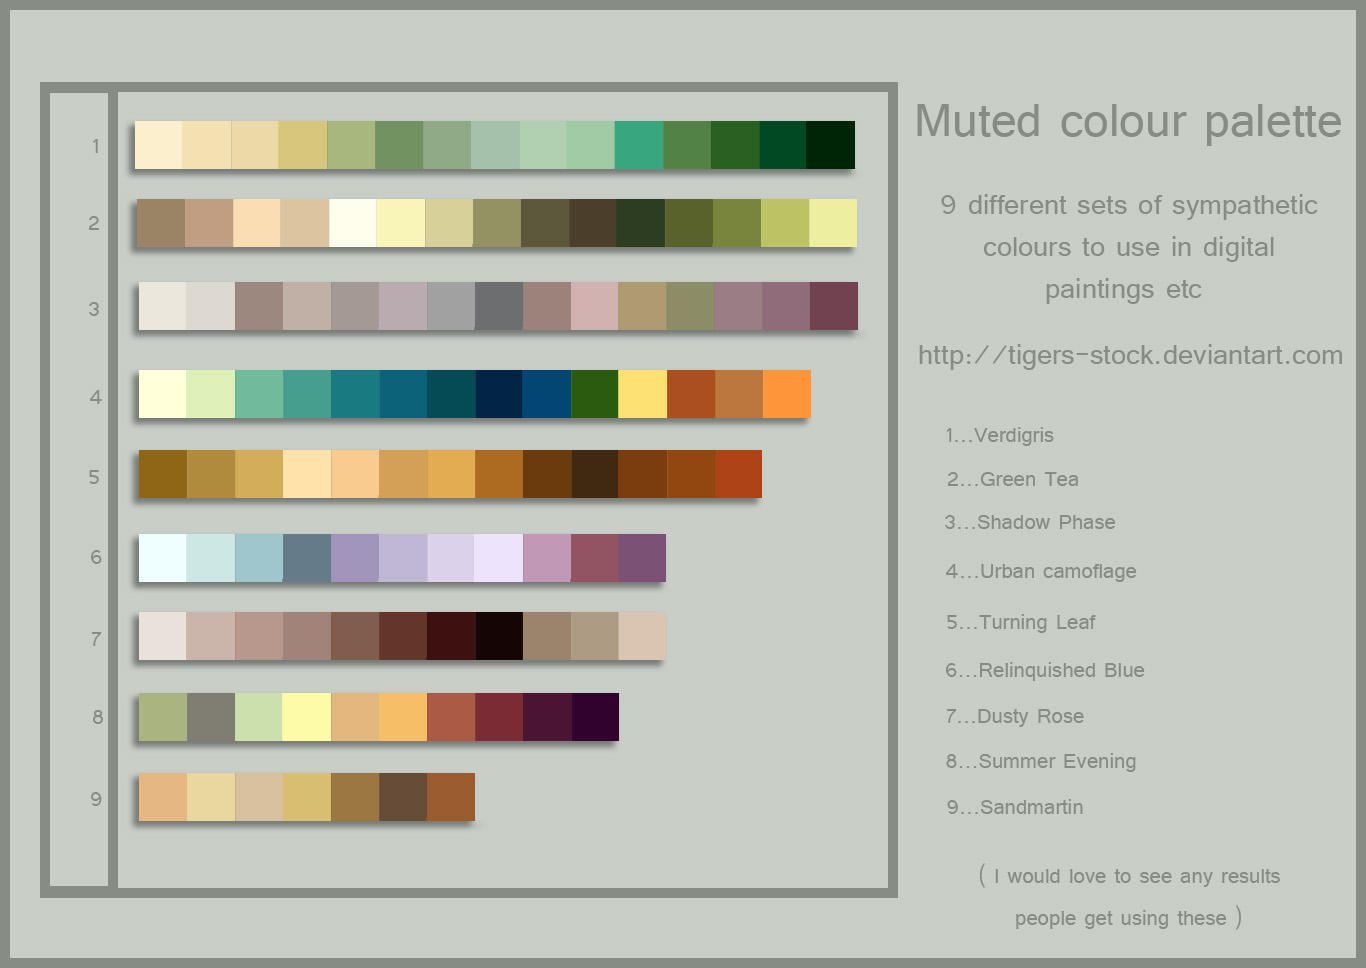 254 colour palette muted by tigers stock on deviantart